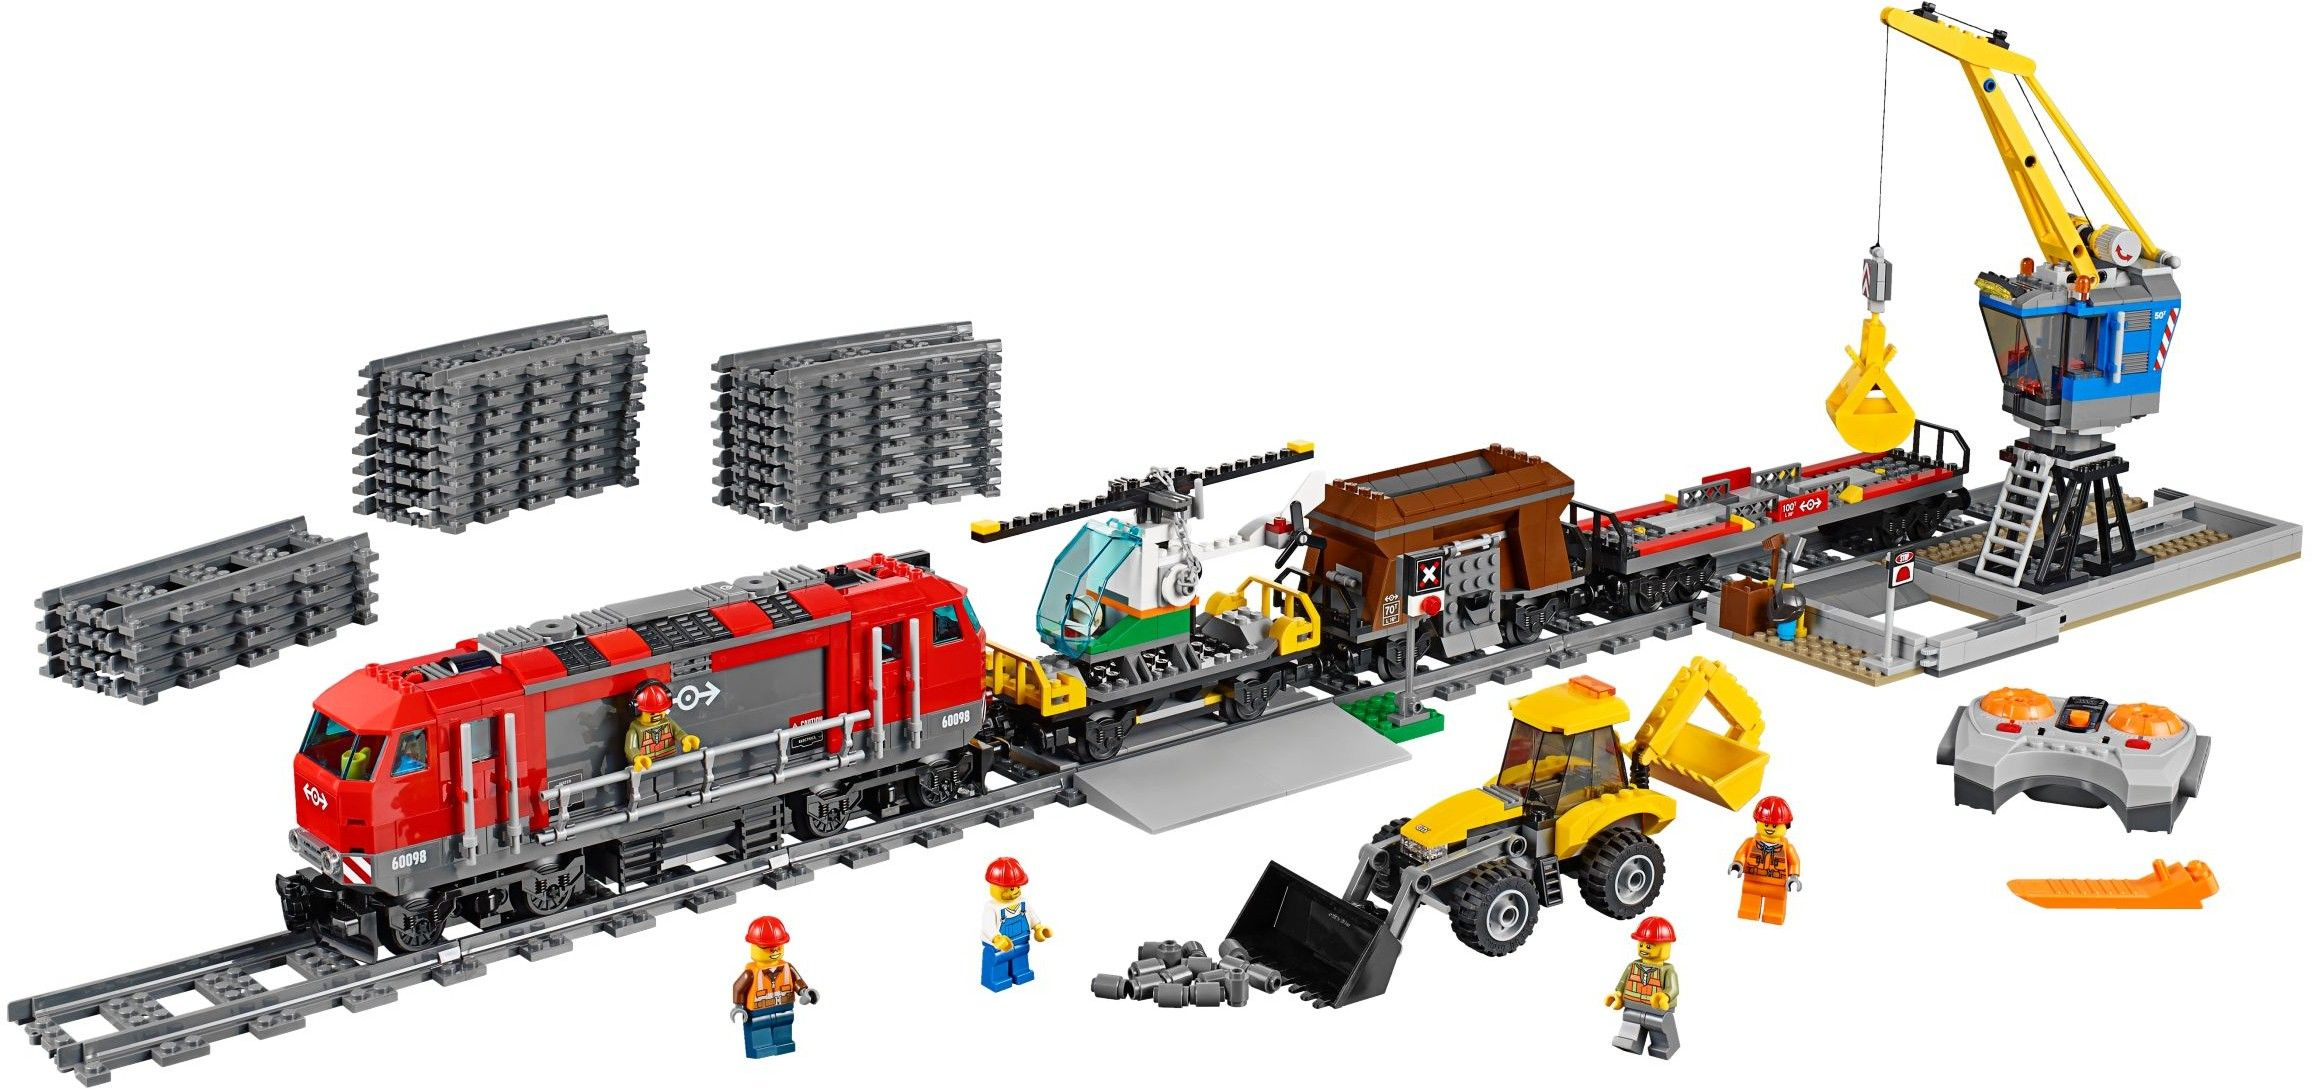 lego city heavy haul train 60098 set photos preview bricks and 2017 2018 best cars reviews. Black Bedroom Furniture Sets. Home Design Ideas